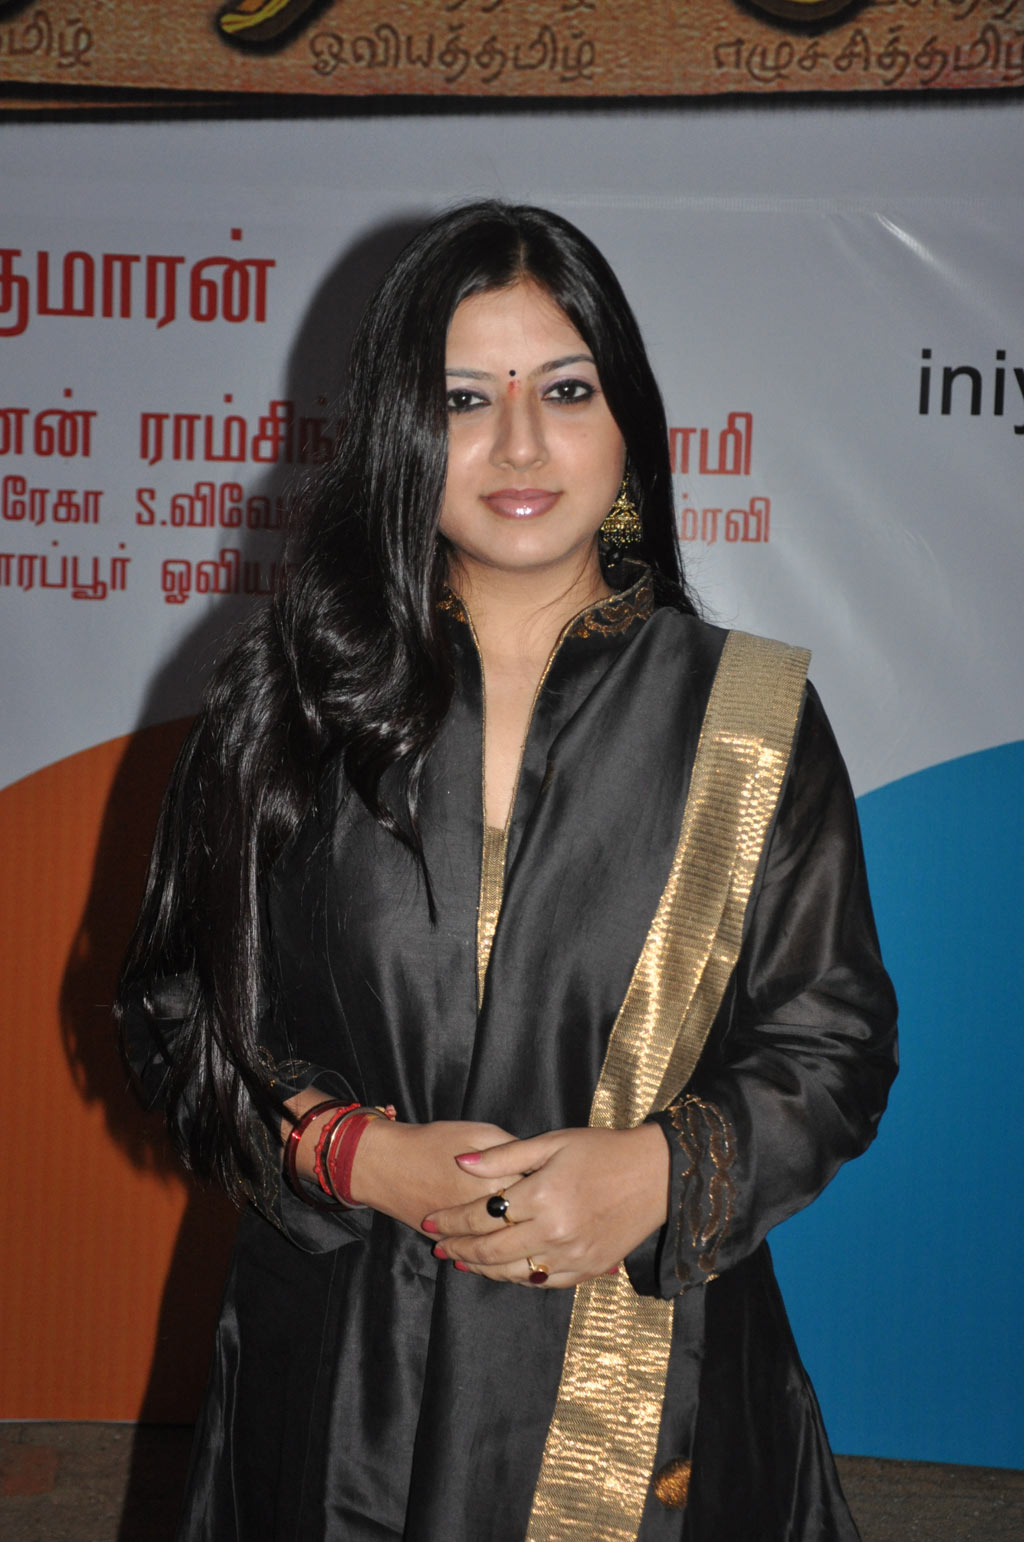 Cute keerthi chawla in black